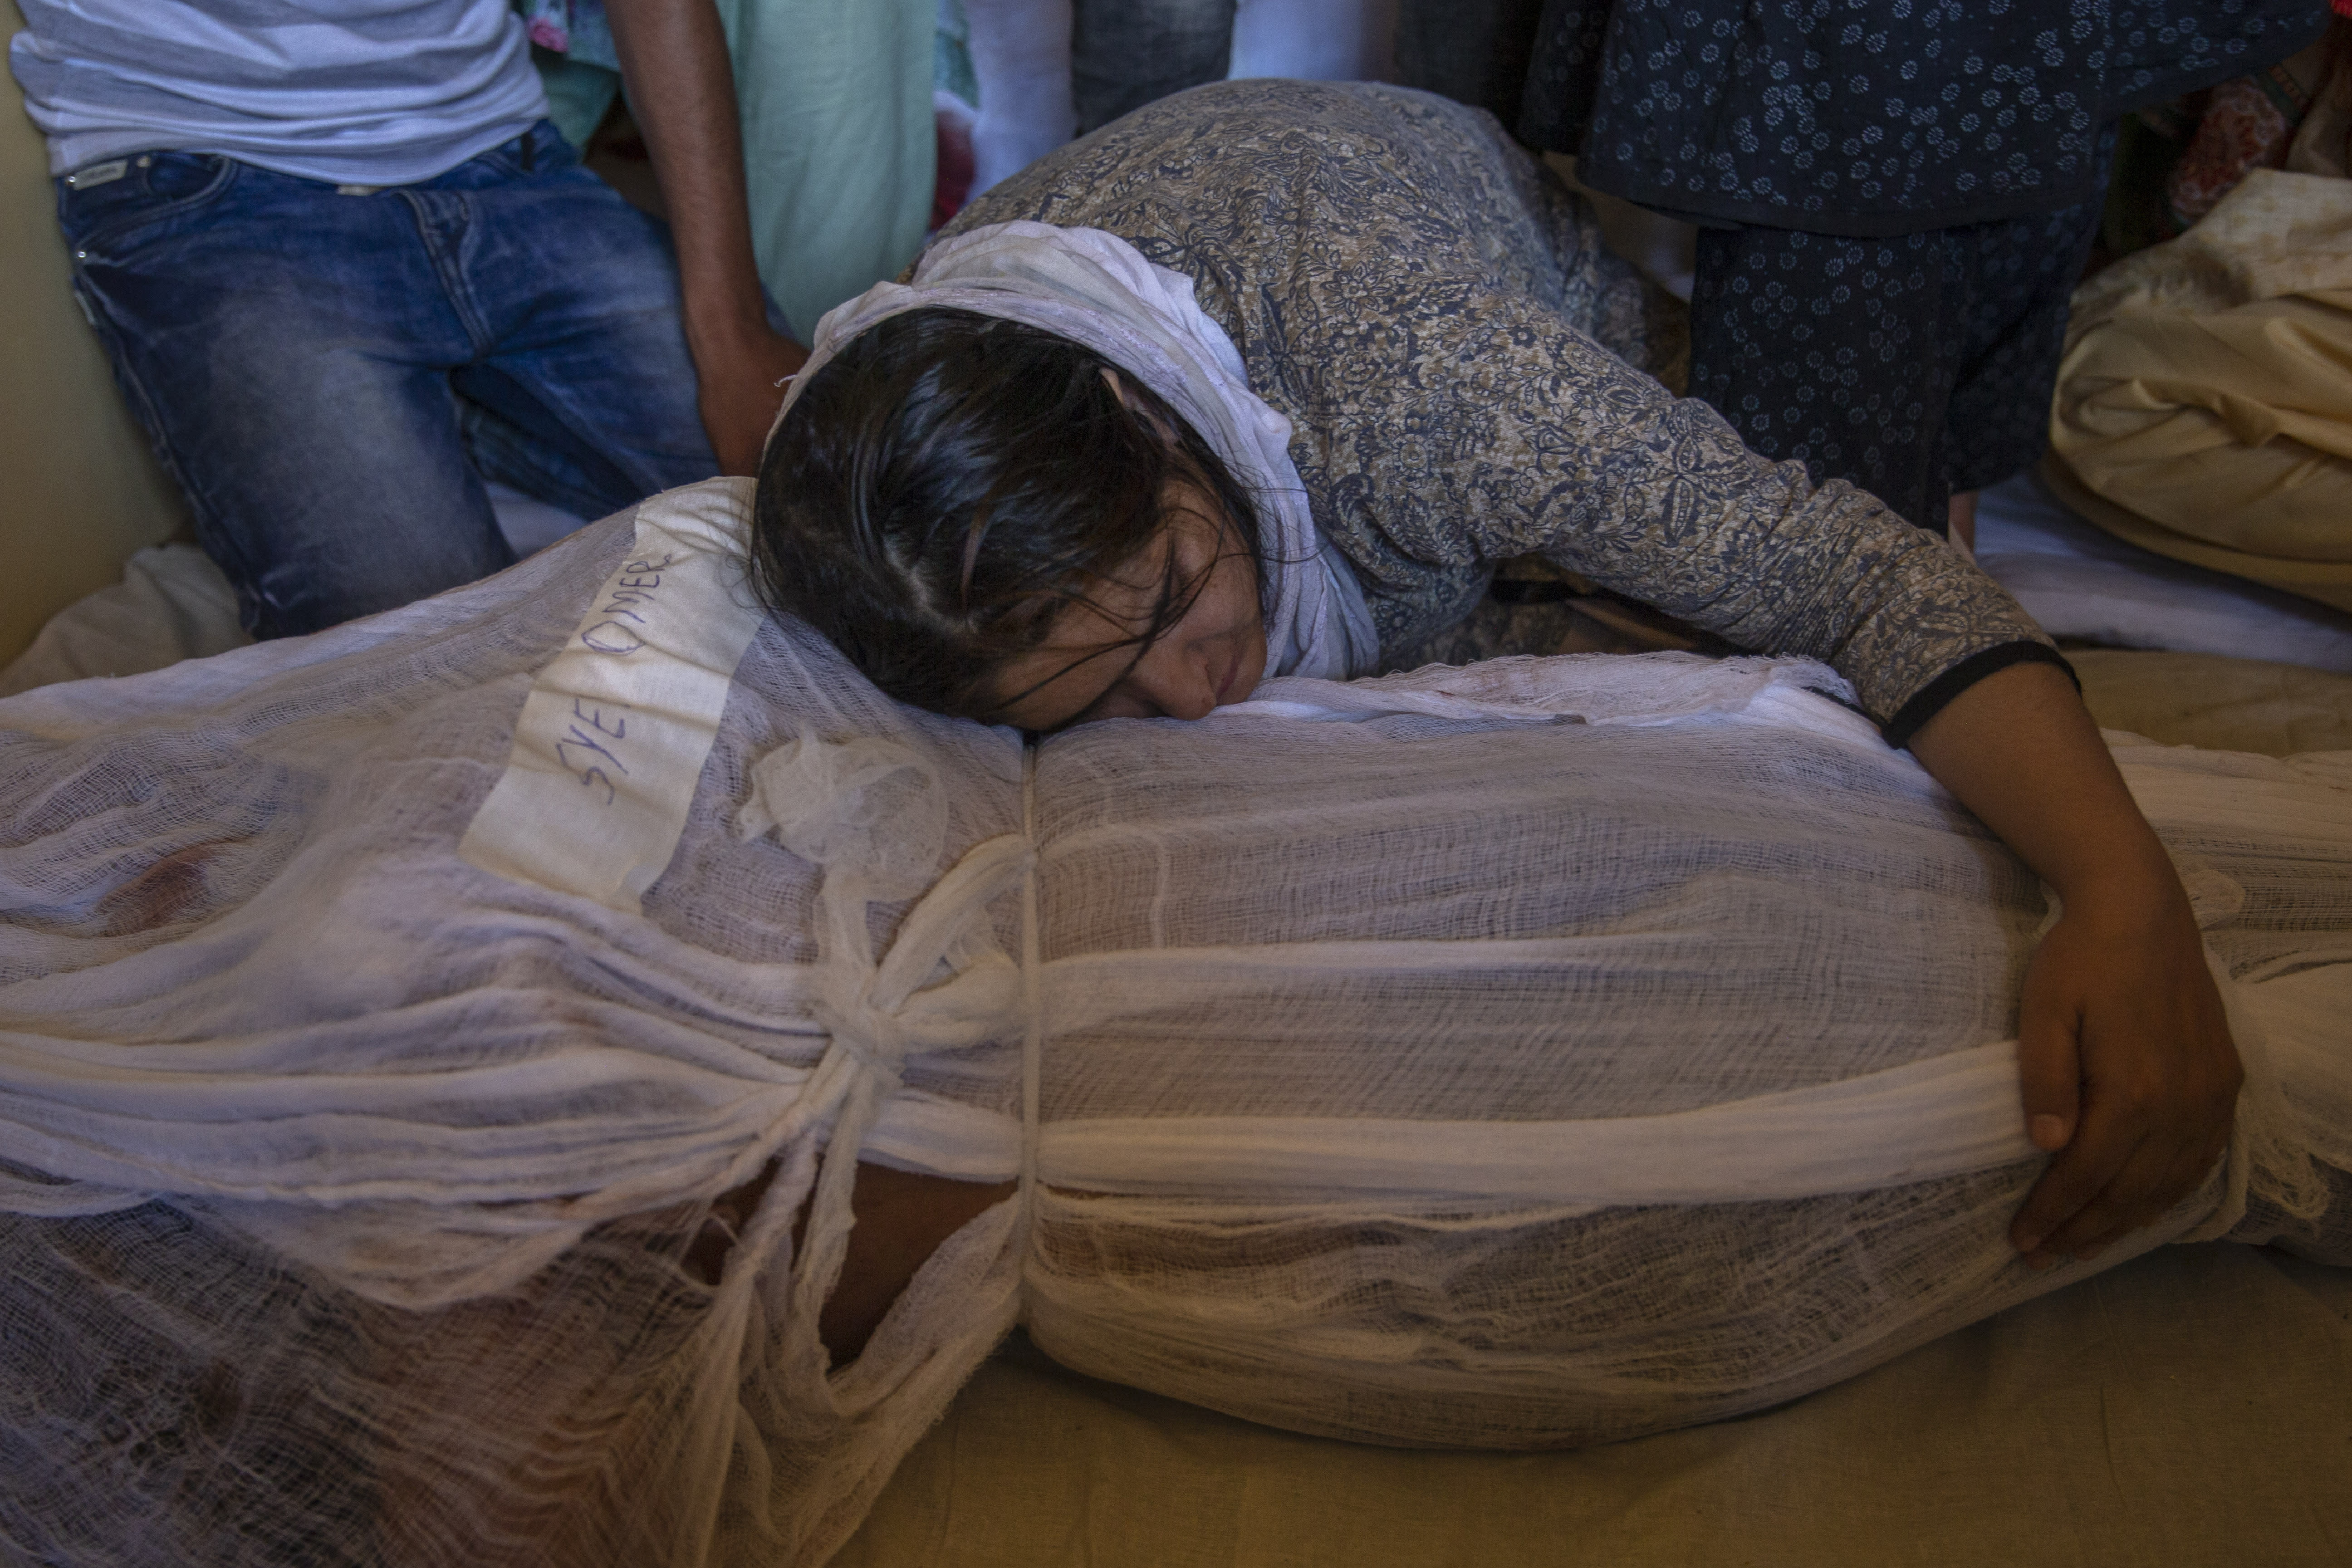 A girl mourns by the body of her brother Syed Omer Bari in Bandipora town, north of Srinagar, Indian controlled Kashmir, Thursday, July 9, 2020. Unidentified assailants late Wednesday fatally shot Sheikh Wasim Bari, a leader with Prime Minister Narendra Modi's Bharatiya Janata Party, along with his father and brother Syed Omer Bari in Kashmir, police said, in a first major attack against India's ruling party members in the disputed region. (AP Photo/ Dar Yasin)